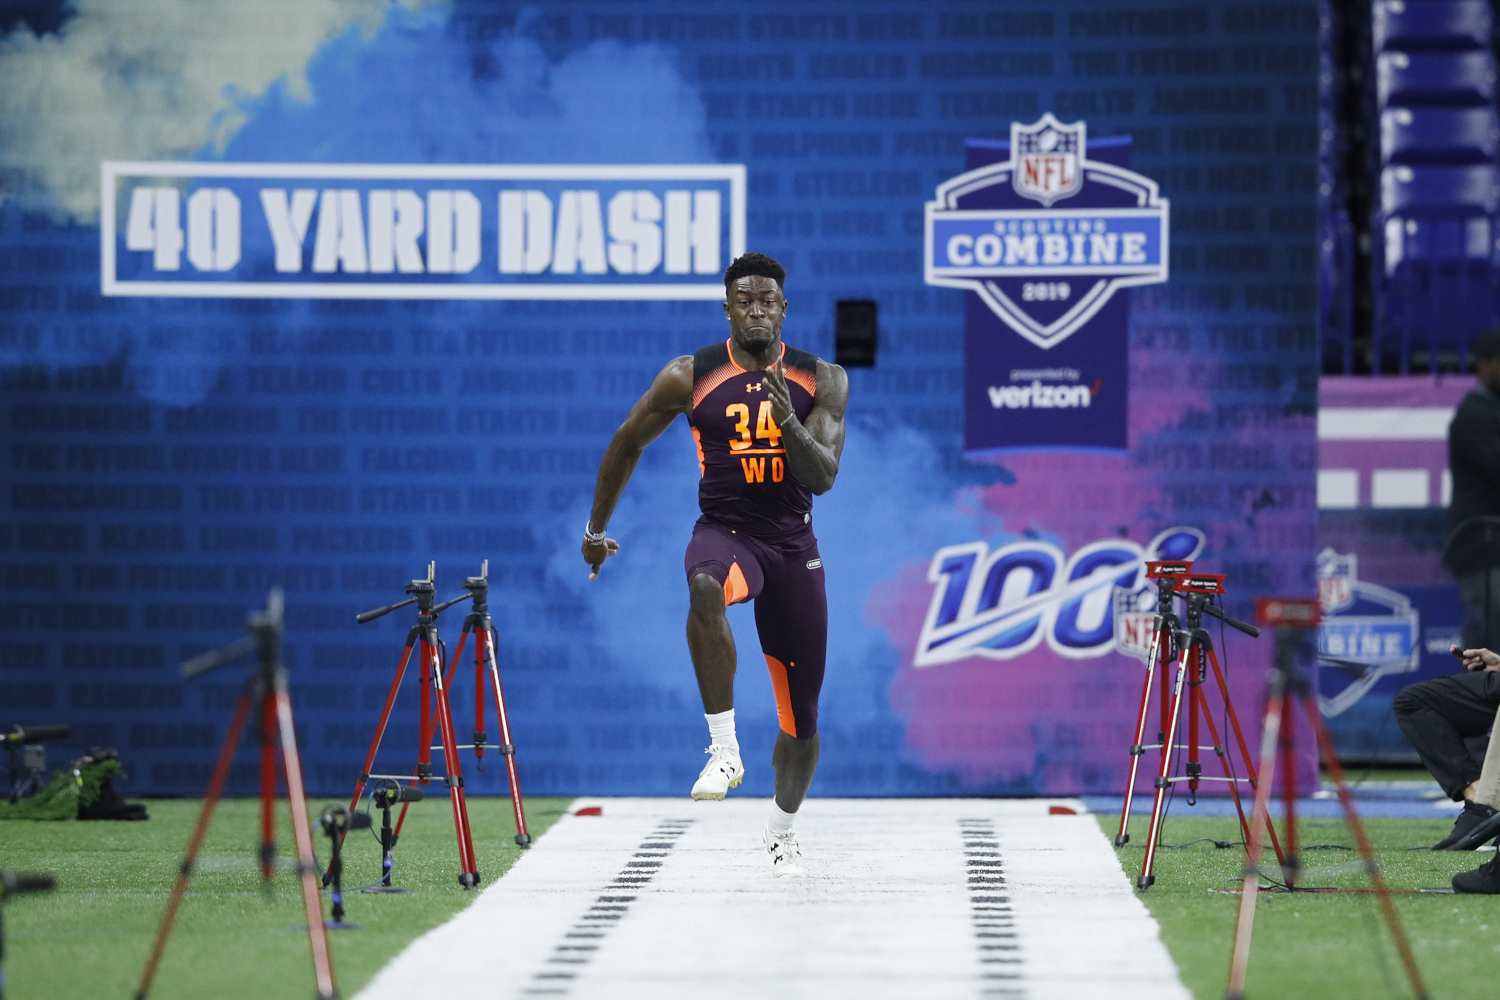 Seattle Seahawks Speedster DK Metcalf Looks to Add His Name to NFL's Long Legacy of Standout Sprinters